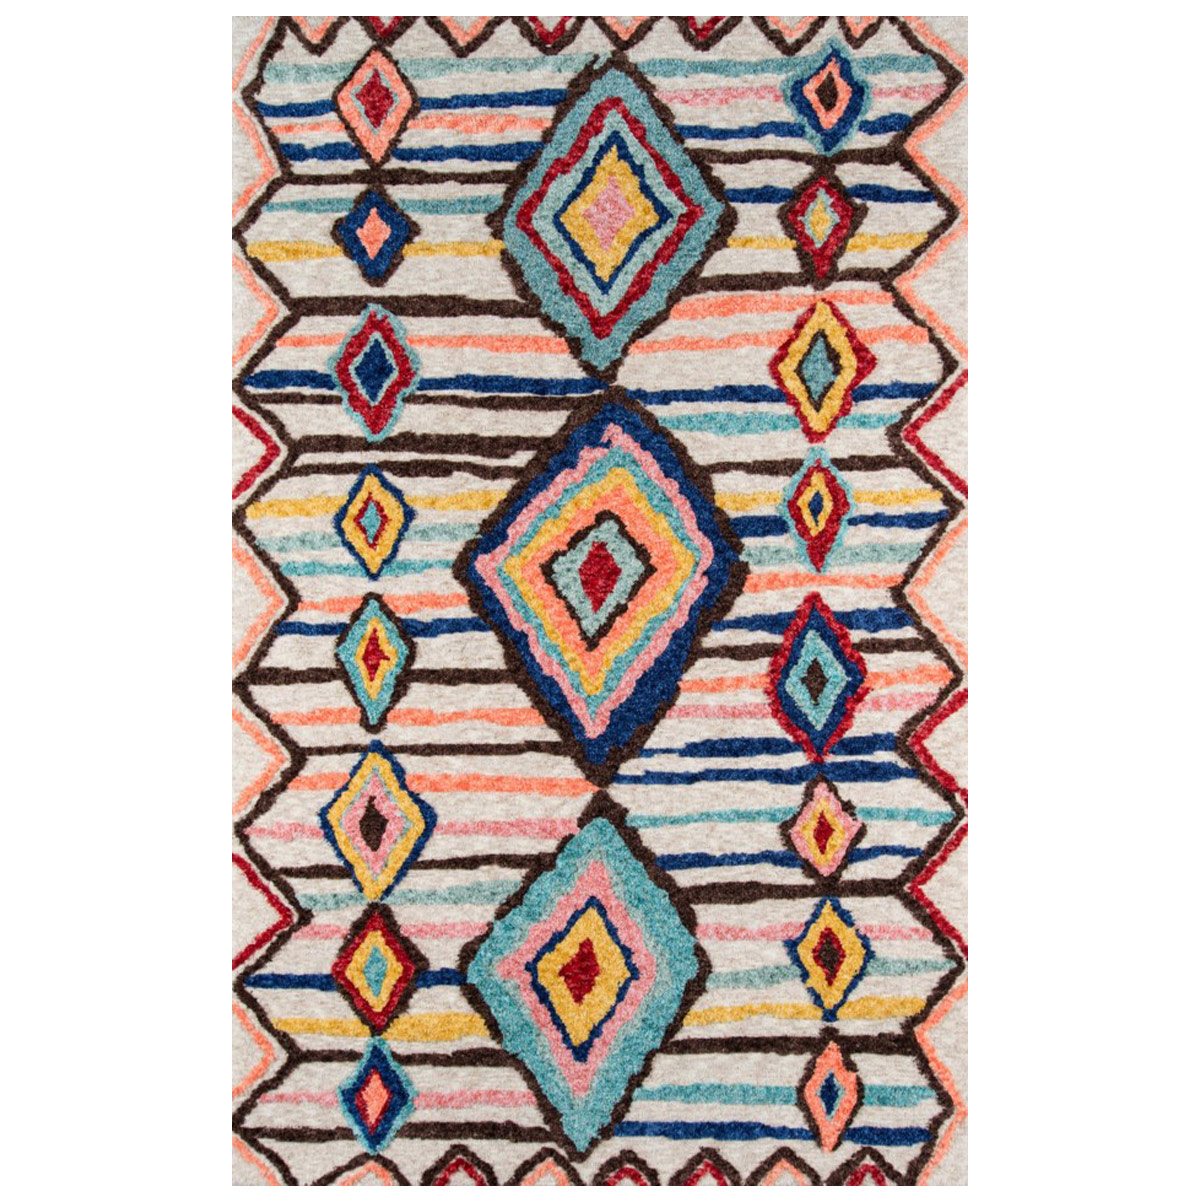 Arturo Colorful Rug - 9 x 12